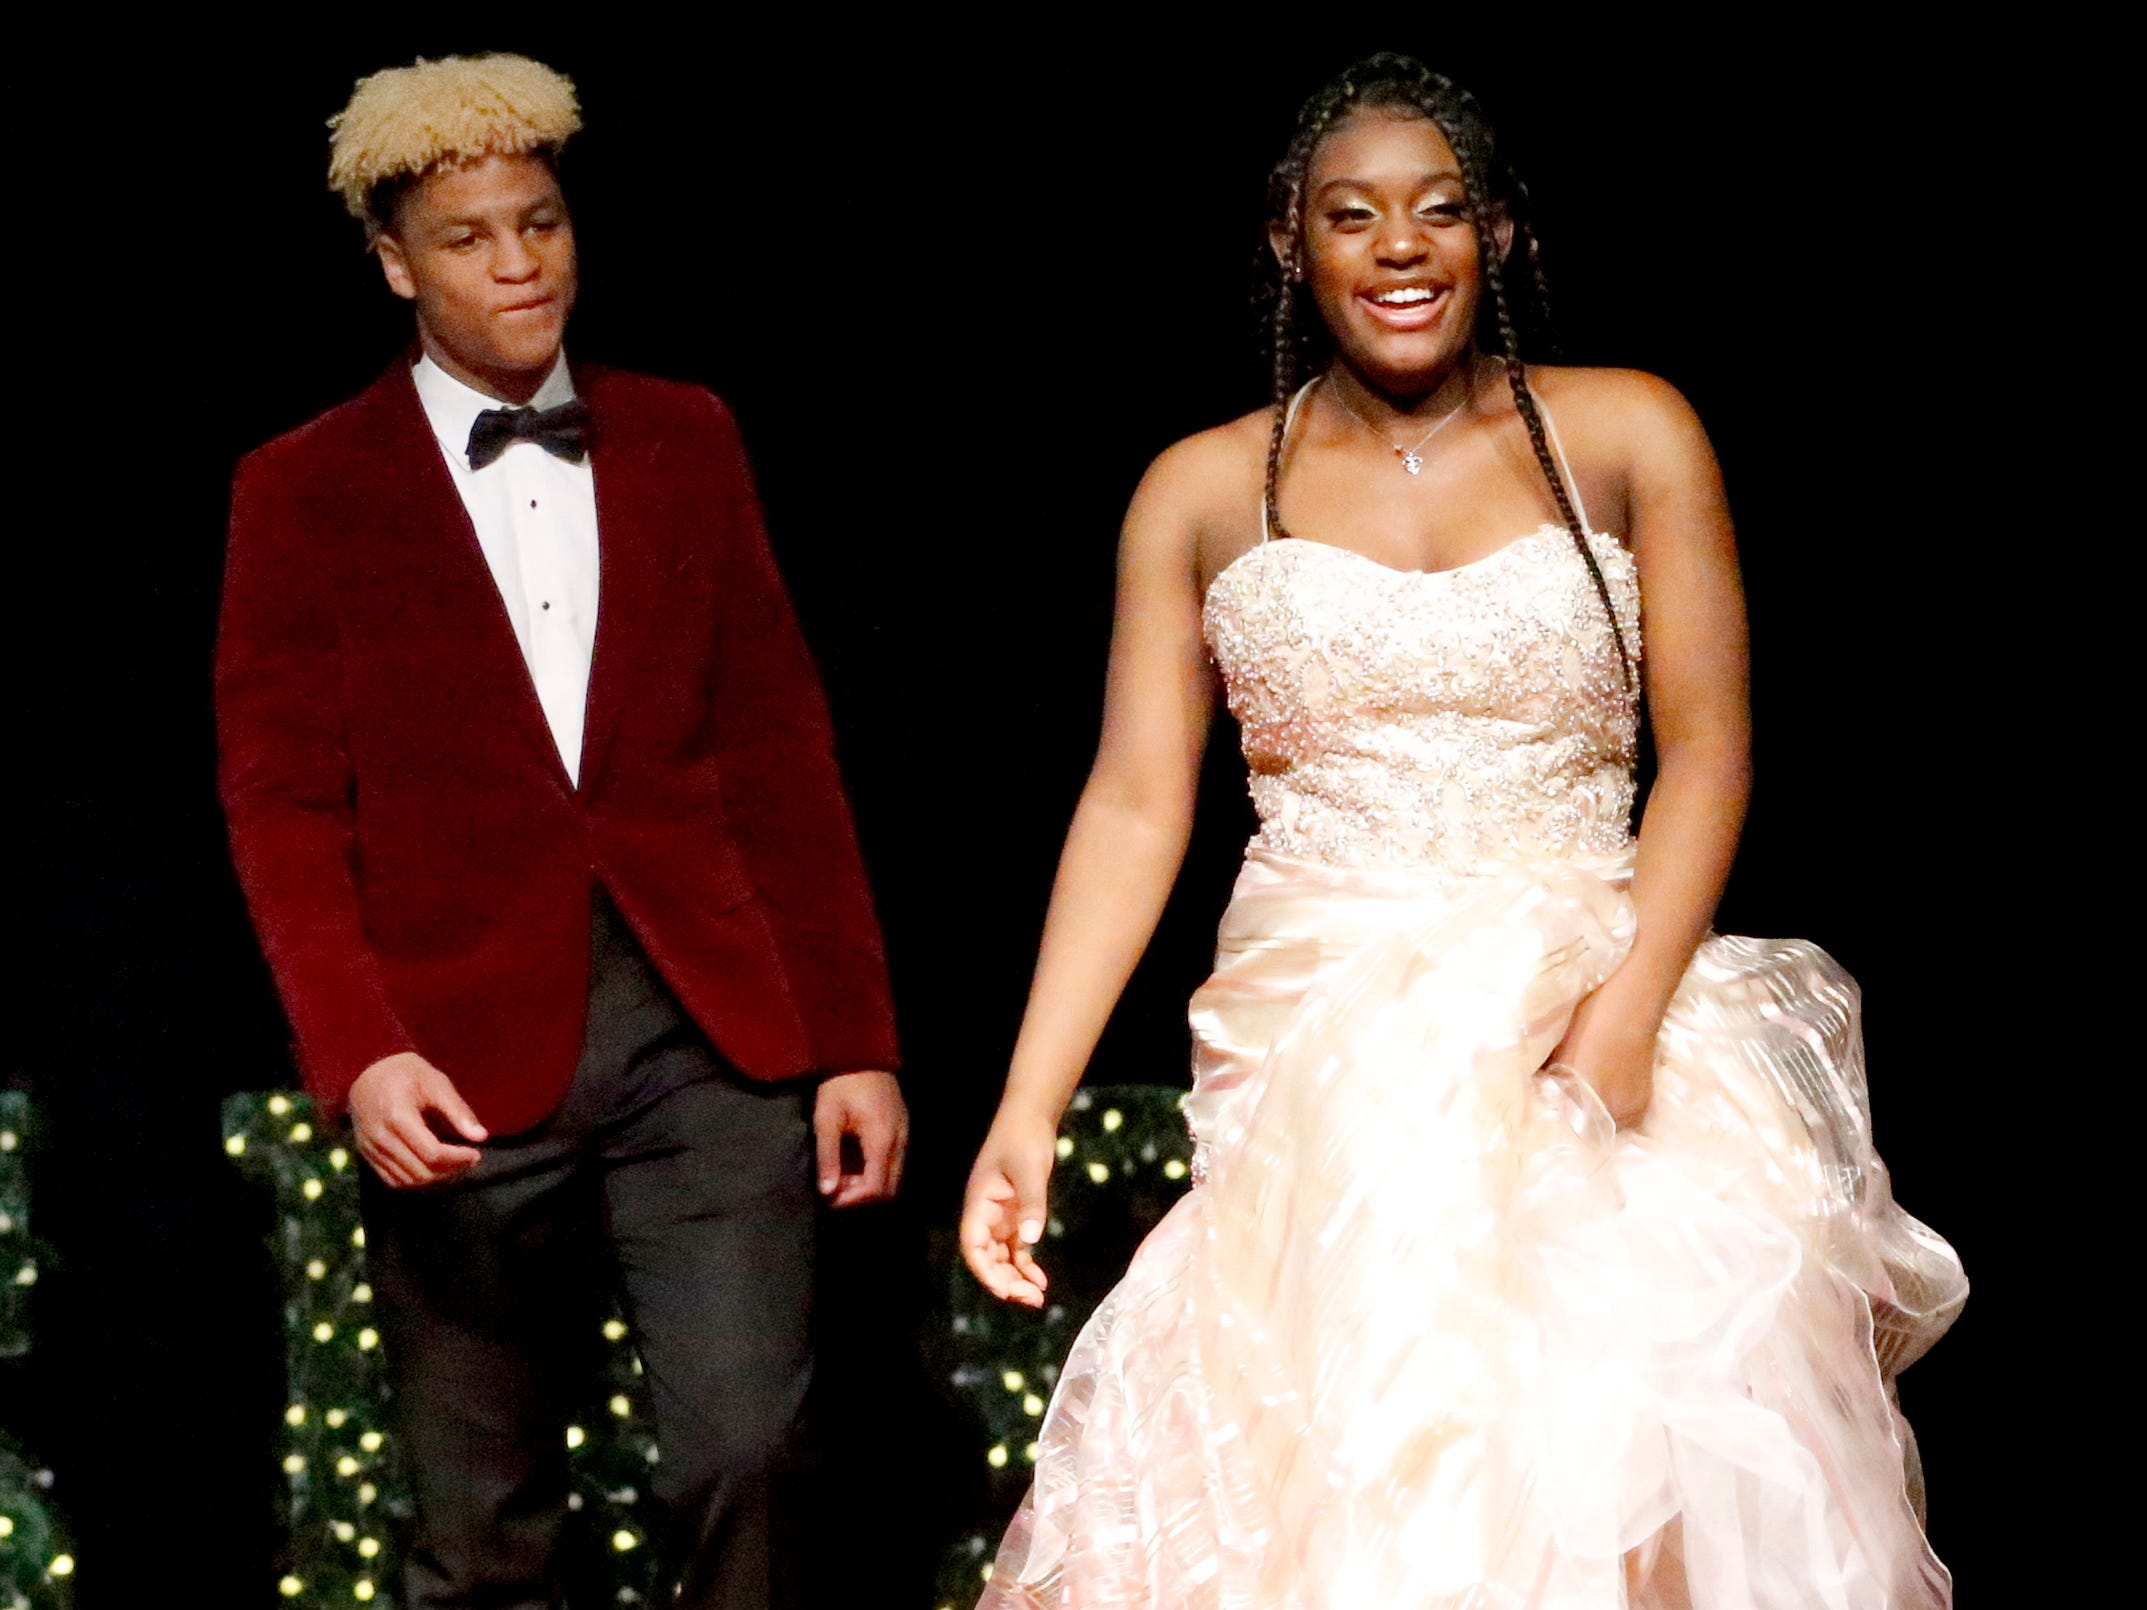 Ryan Wilson, left and Amia Brewster, right show off the latest in prom fashions during the Siegel Prom Fashion show on Thursday, Feb. 14, 2019.